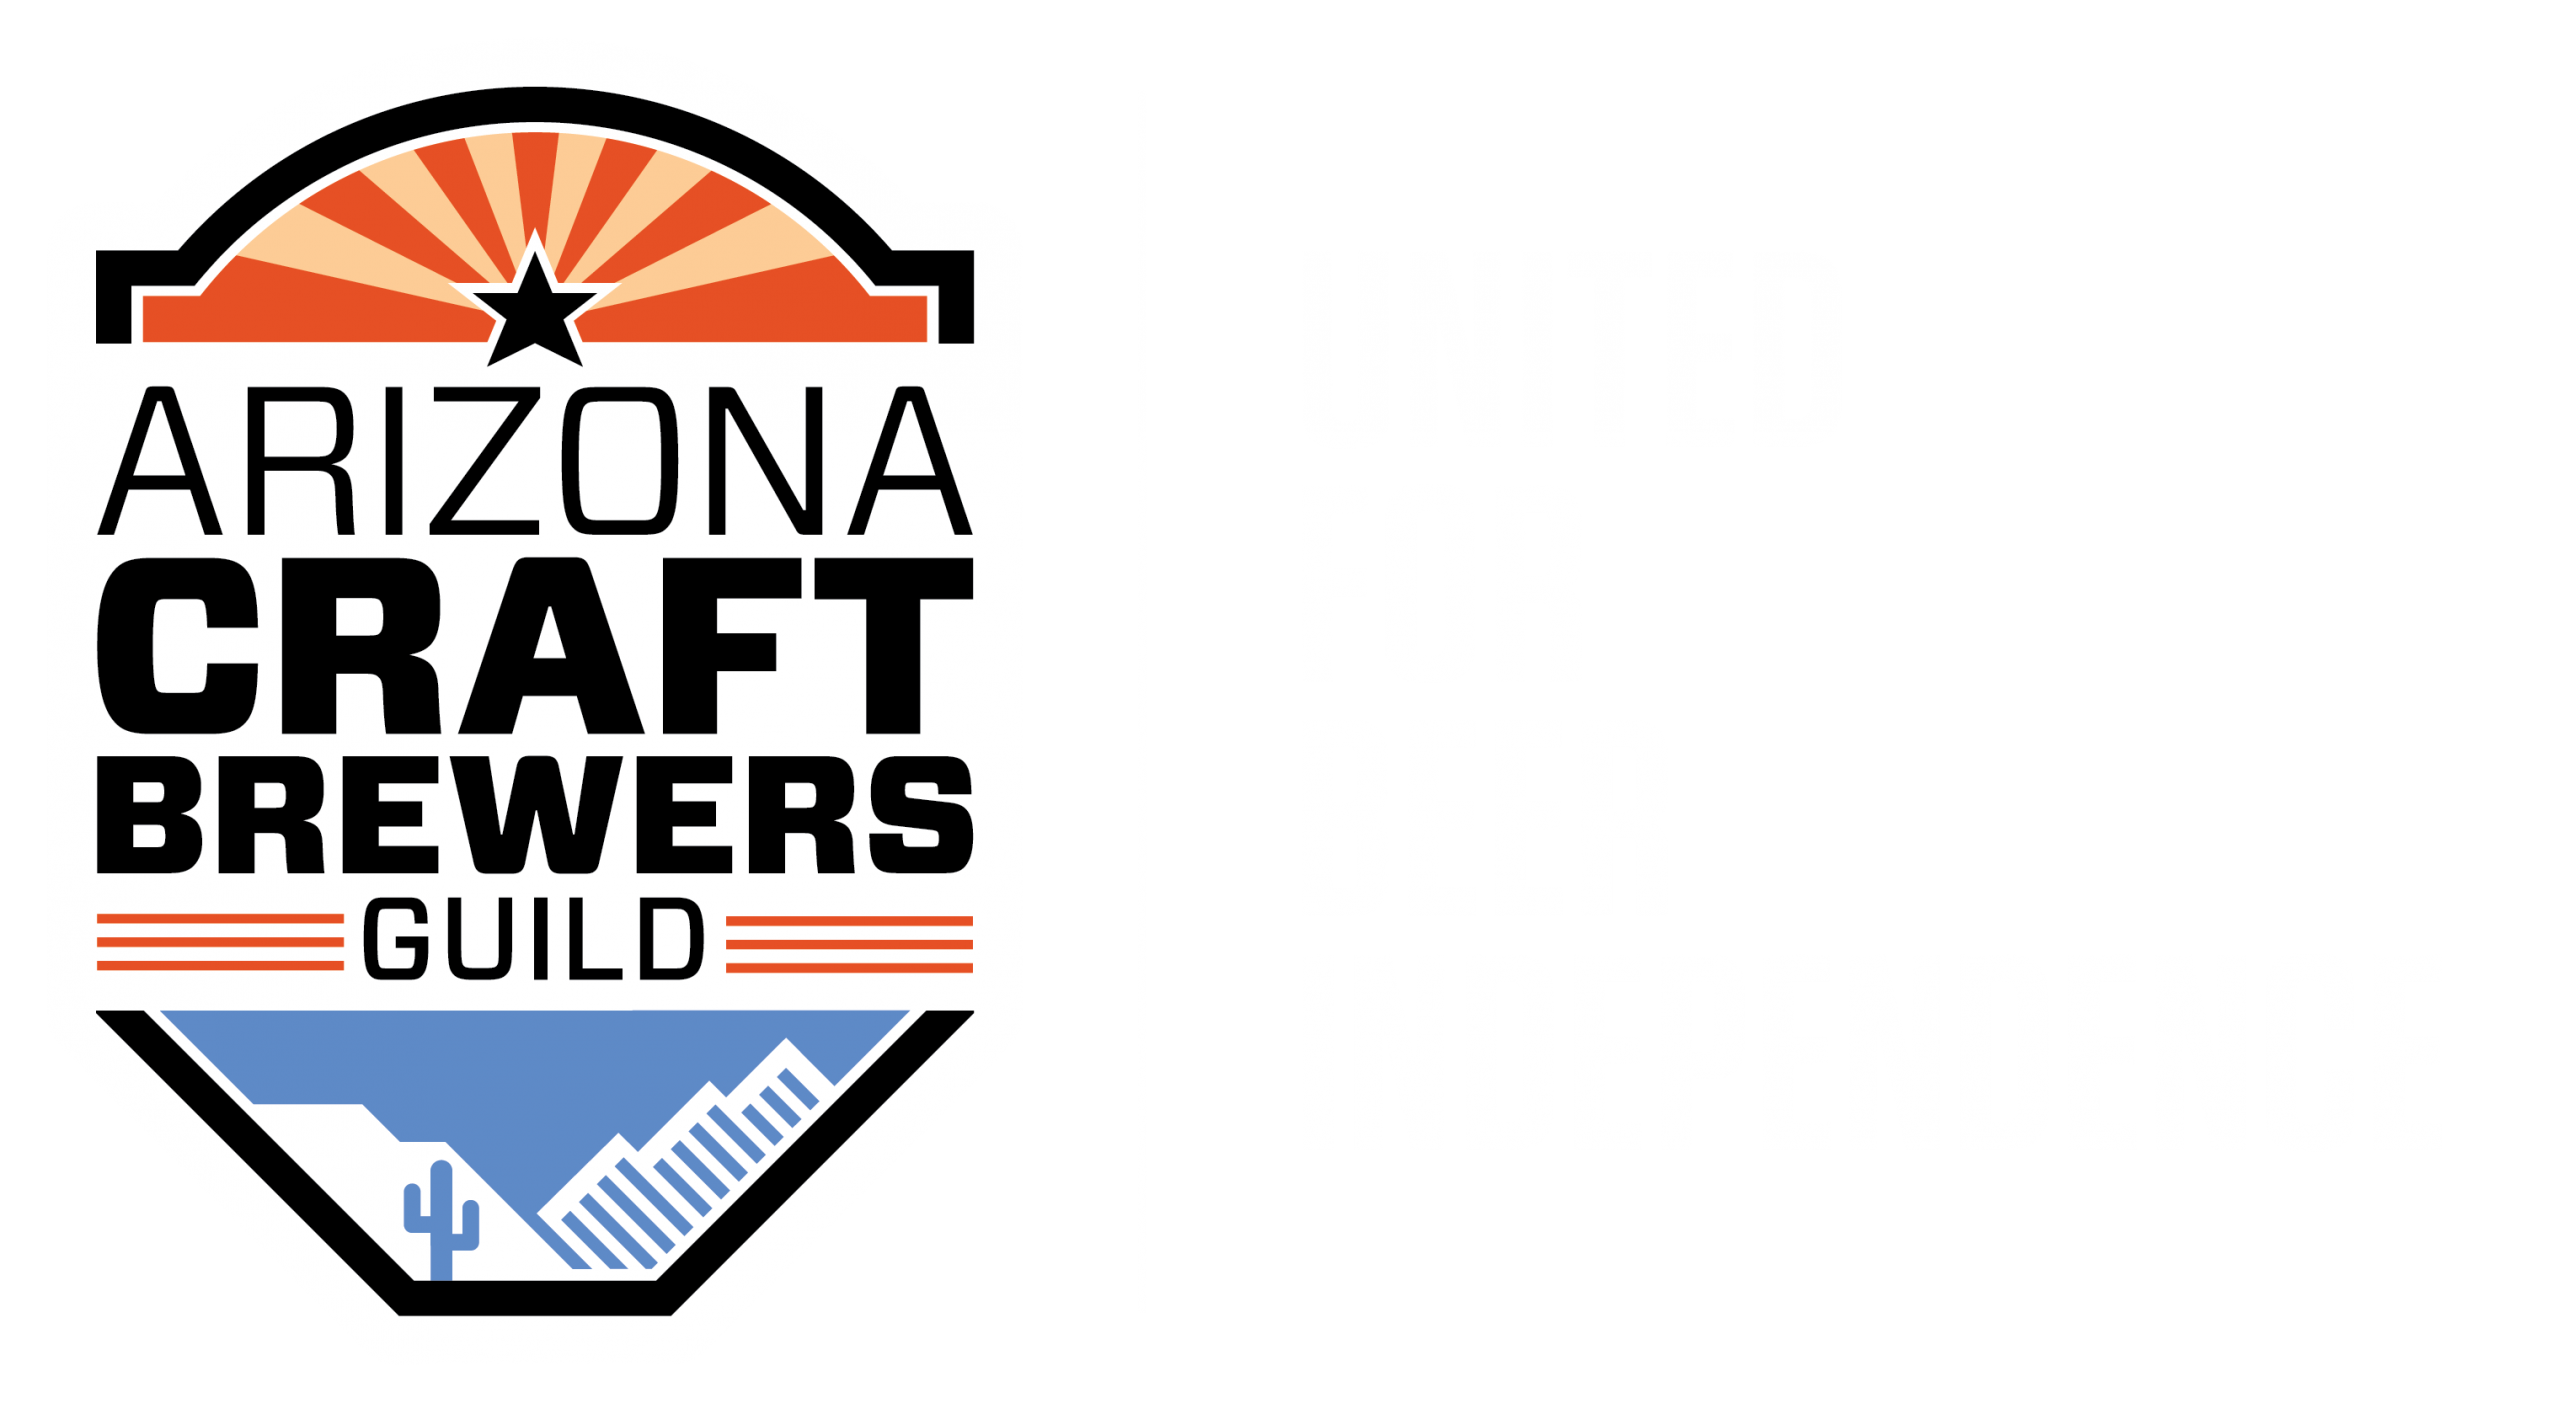 Arizona Food and Beer | Arizona Craft Brewers Guild